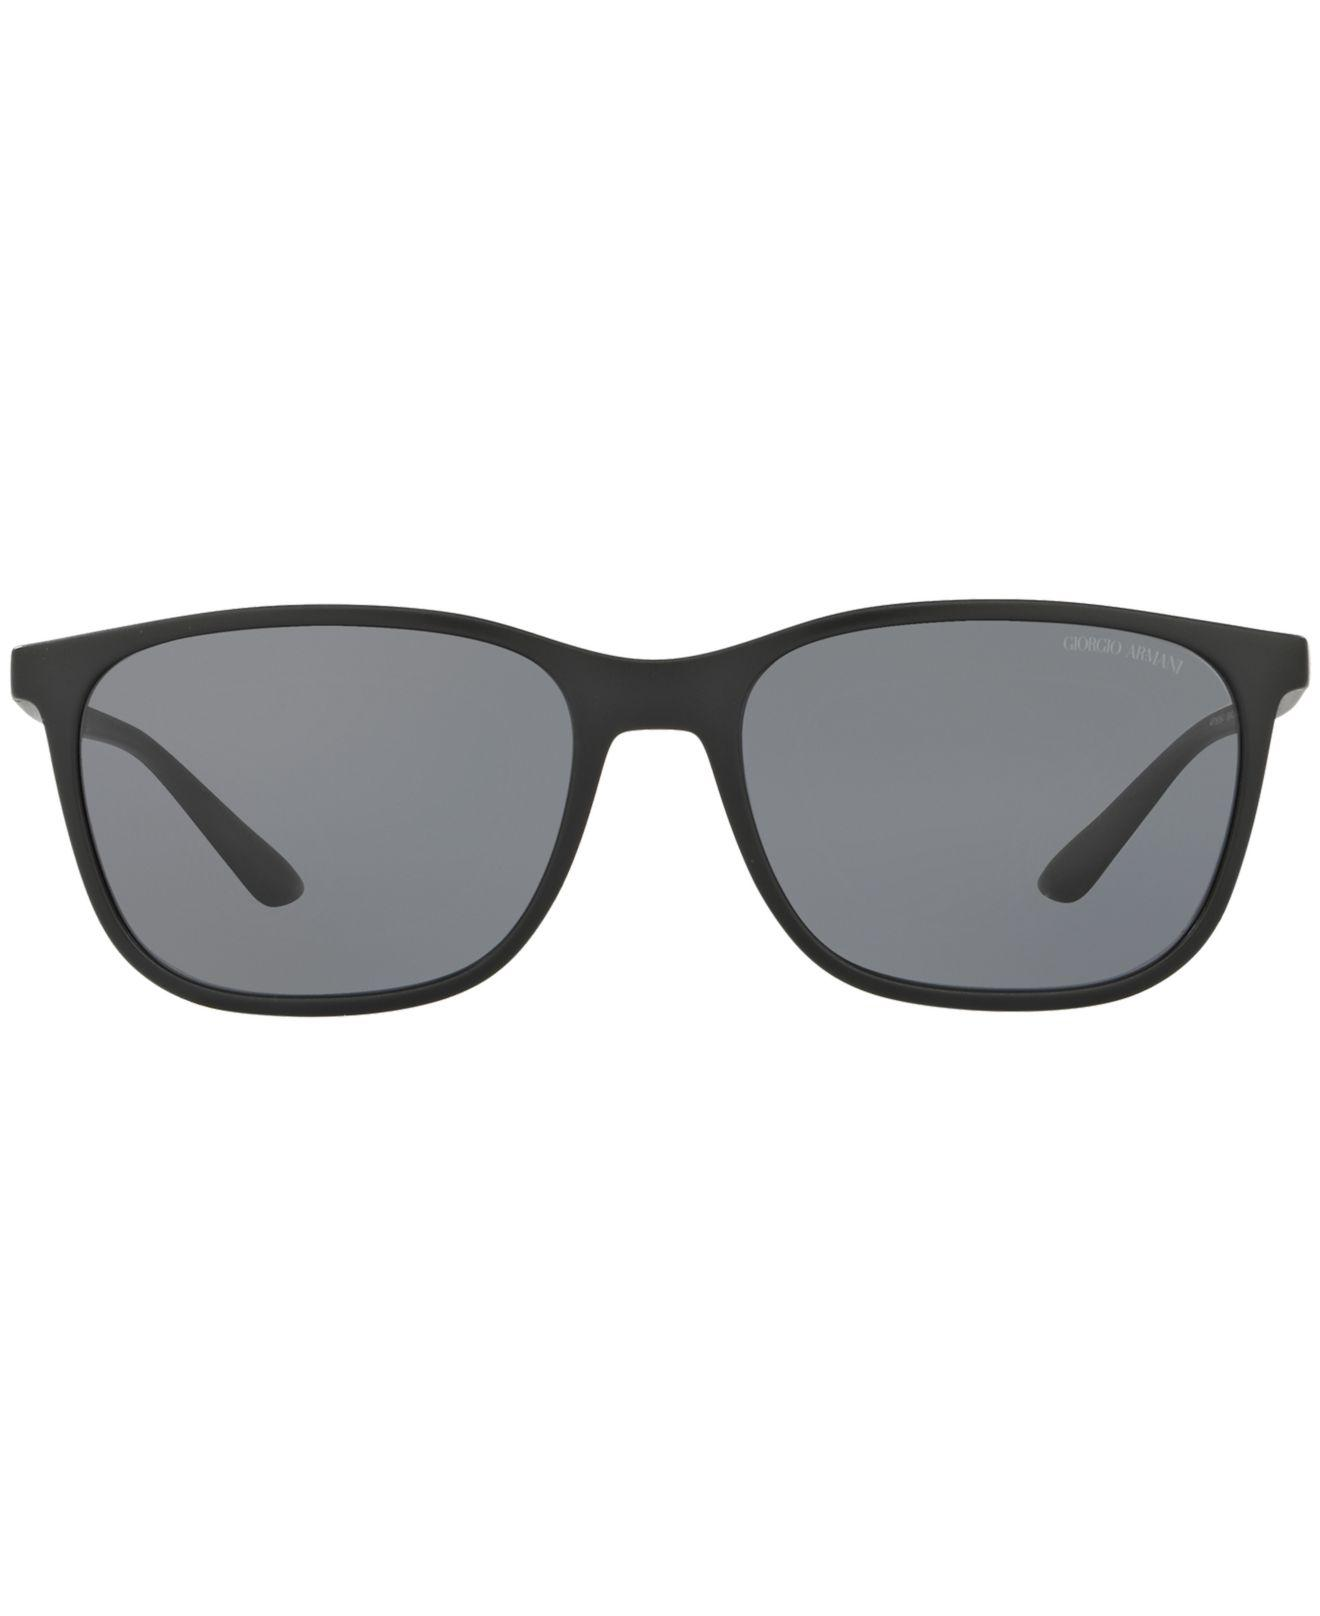 2be049374f49 Lyst - Giorgio Armani Polarized Sunglasses